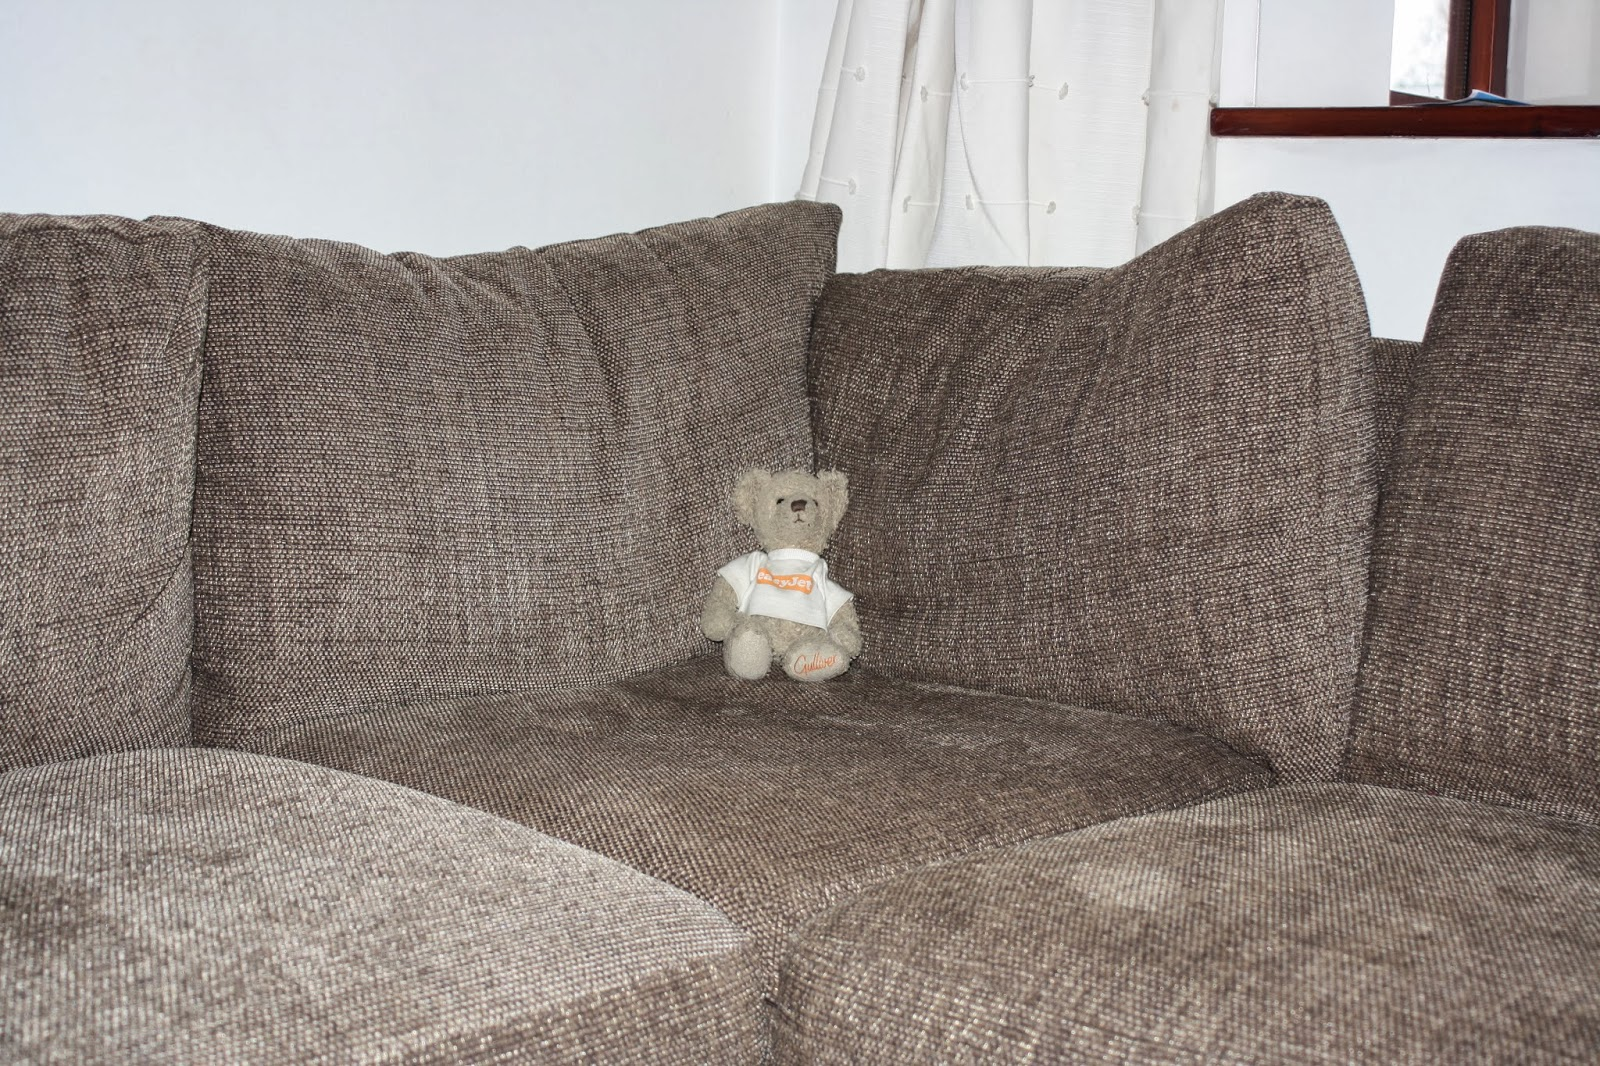 New-settee-house-Teddy-daughter-365